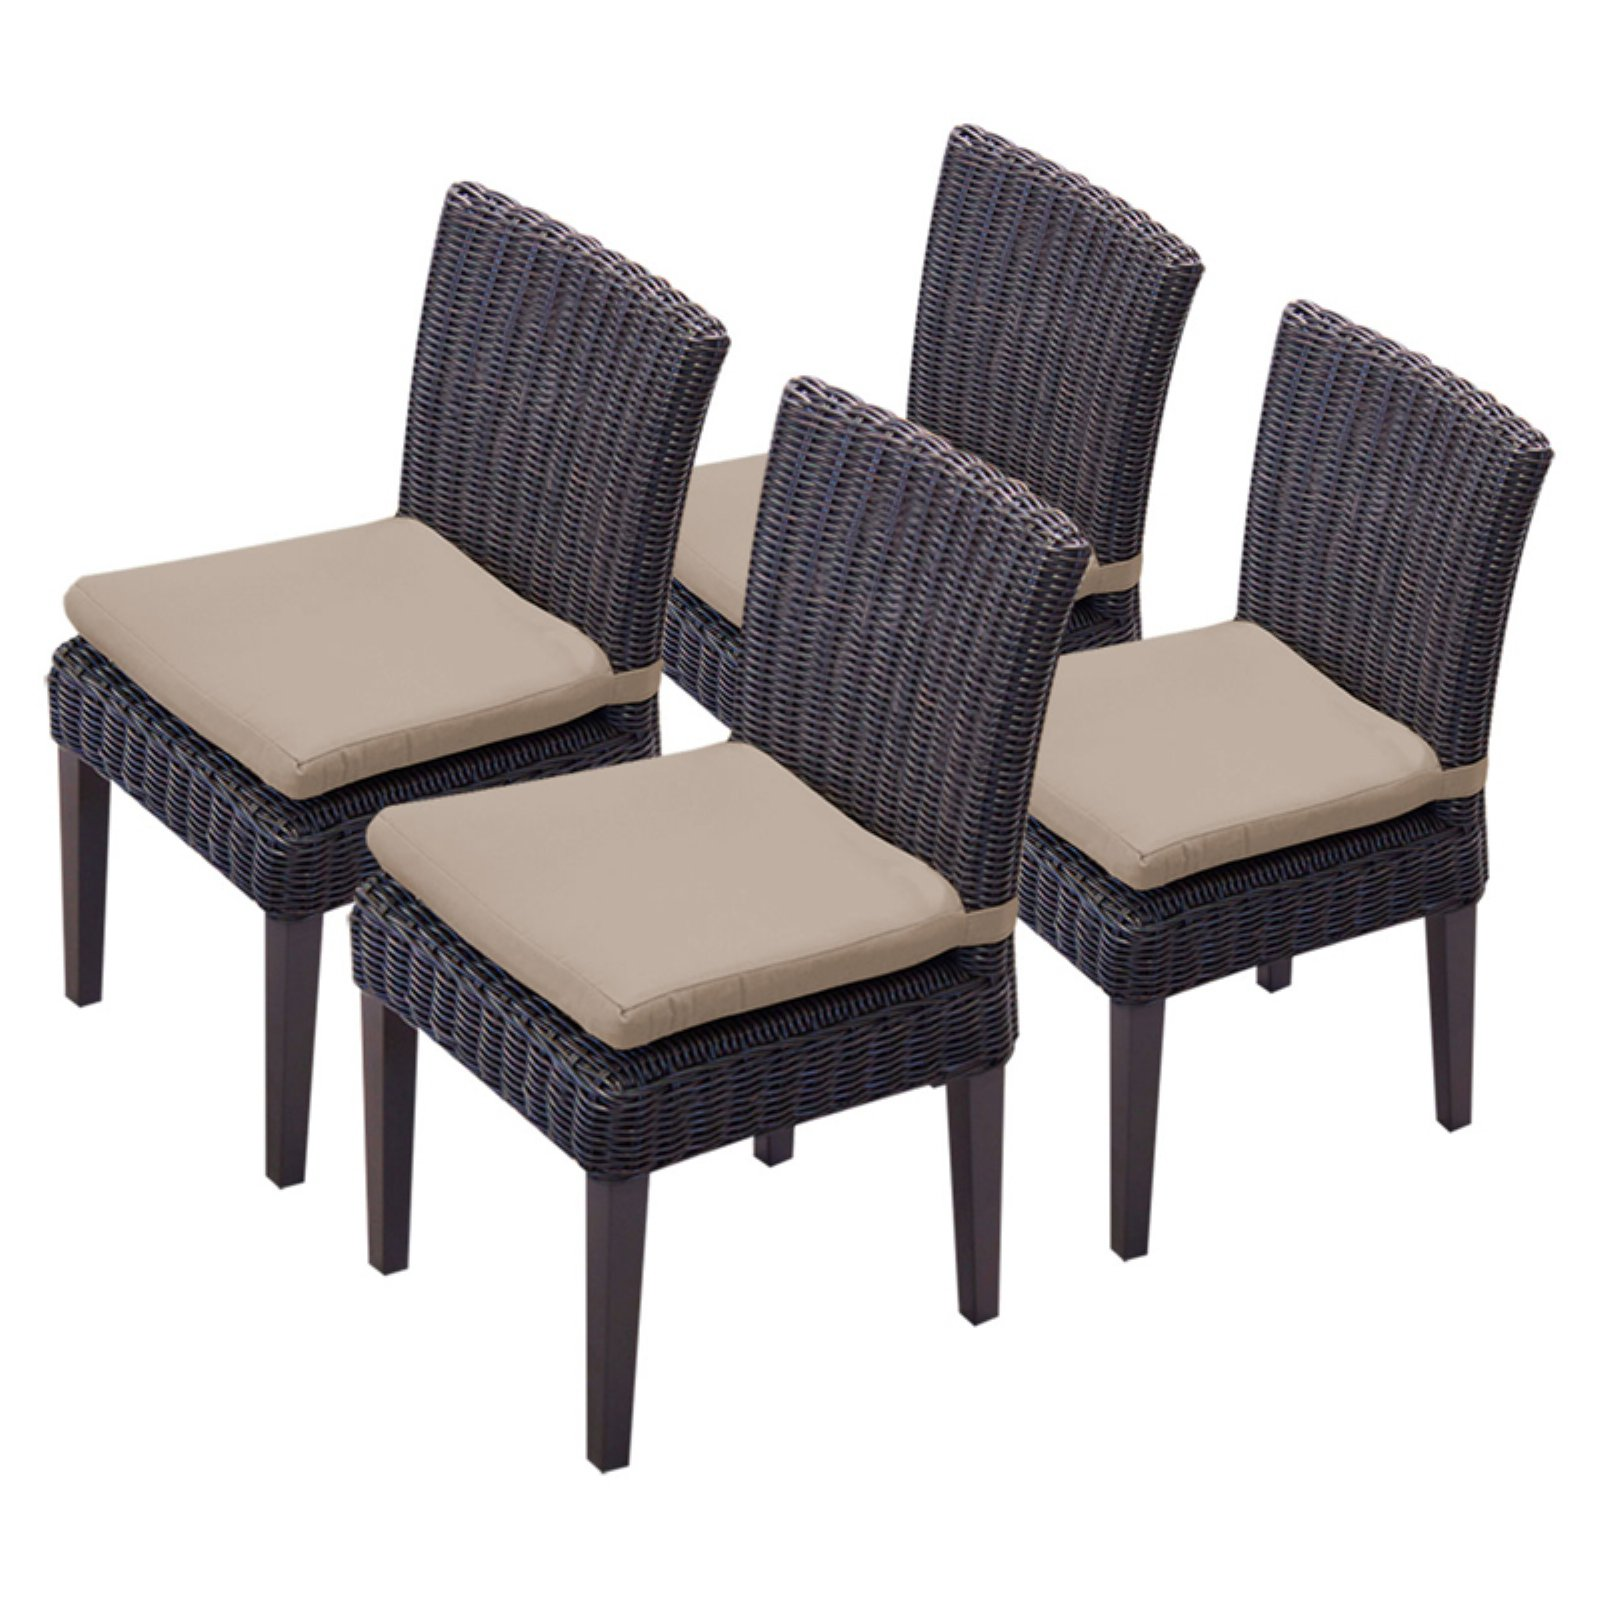 TK Classics Venice Outdoor Dining Side Chair Set